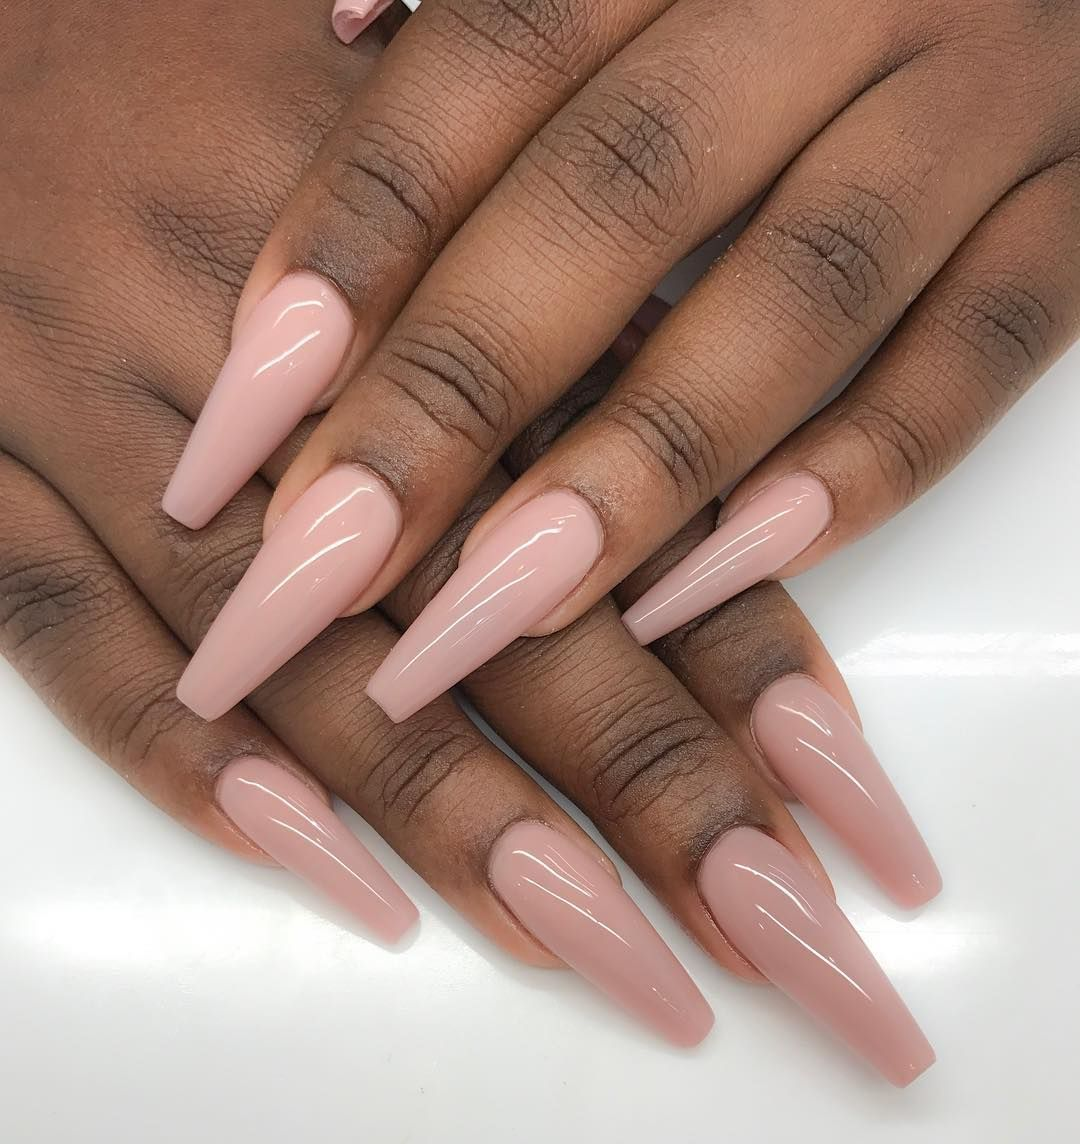 23 Beautiful Nail Art Designs and French Manicure in Acrylic | Nail ...